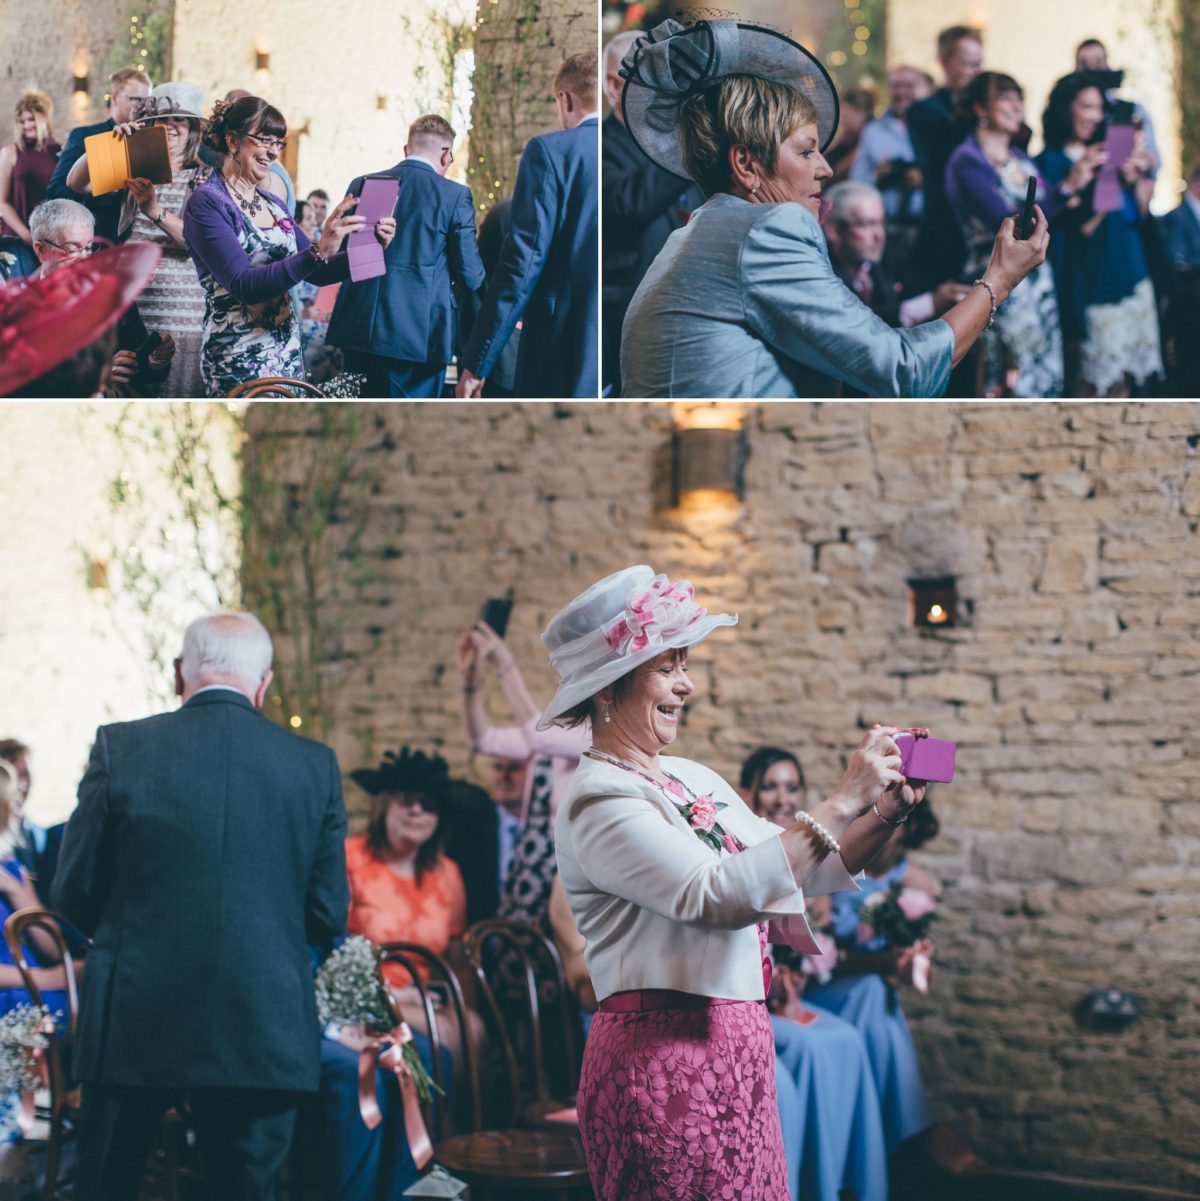 cripps_barn_gloucesterhsire_welsh_wedding_photographer_rachel_lambert_photography_jordan_amy_ 64